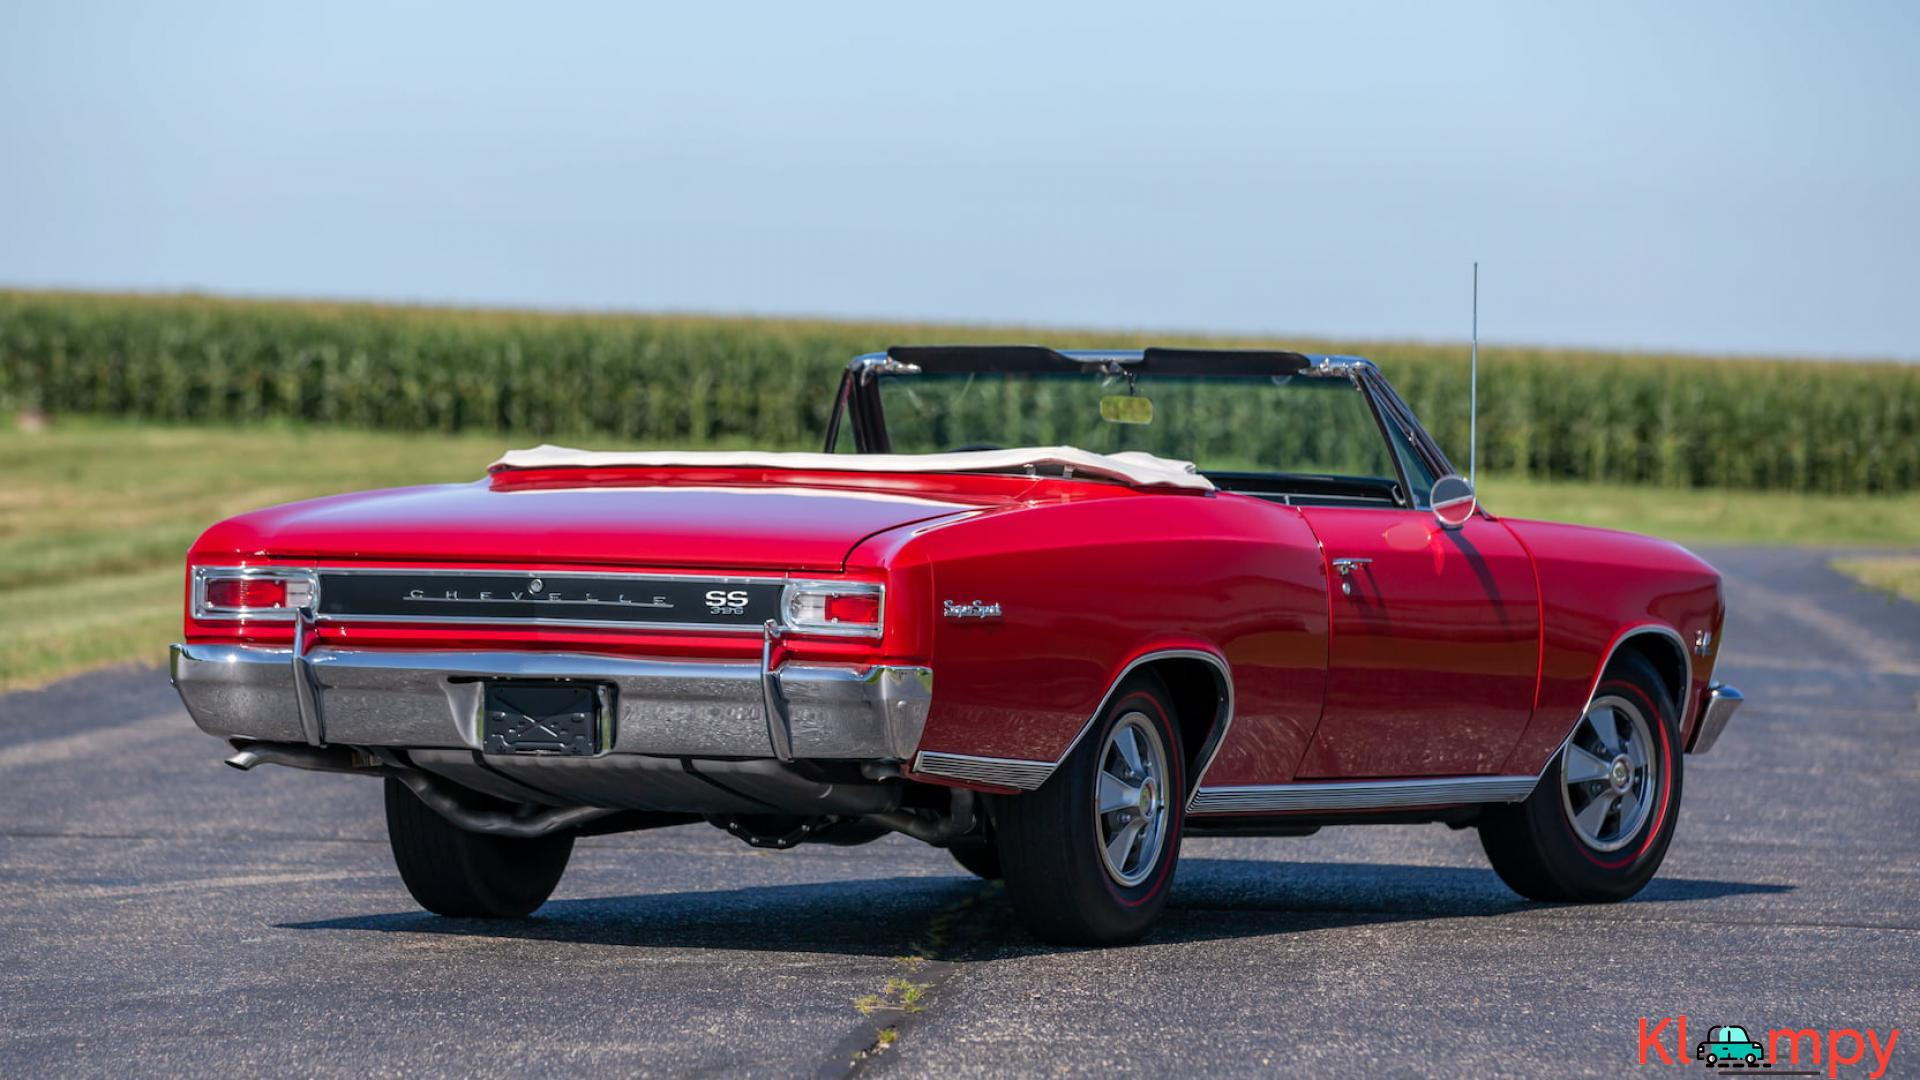 1966 Chevrolet Chevelle SS Convertible - 12/15